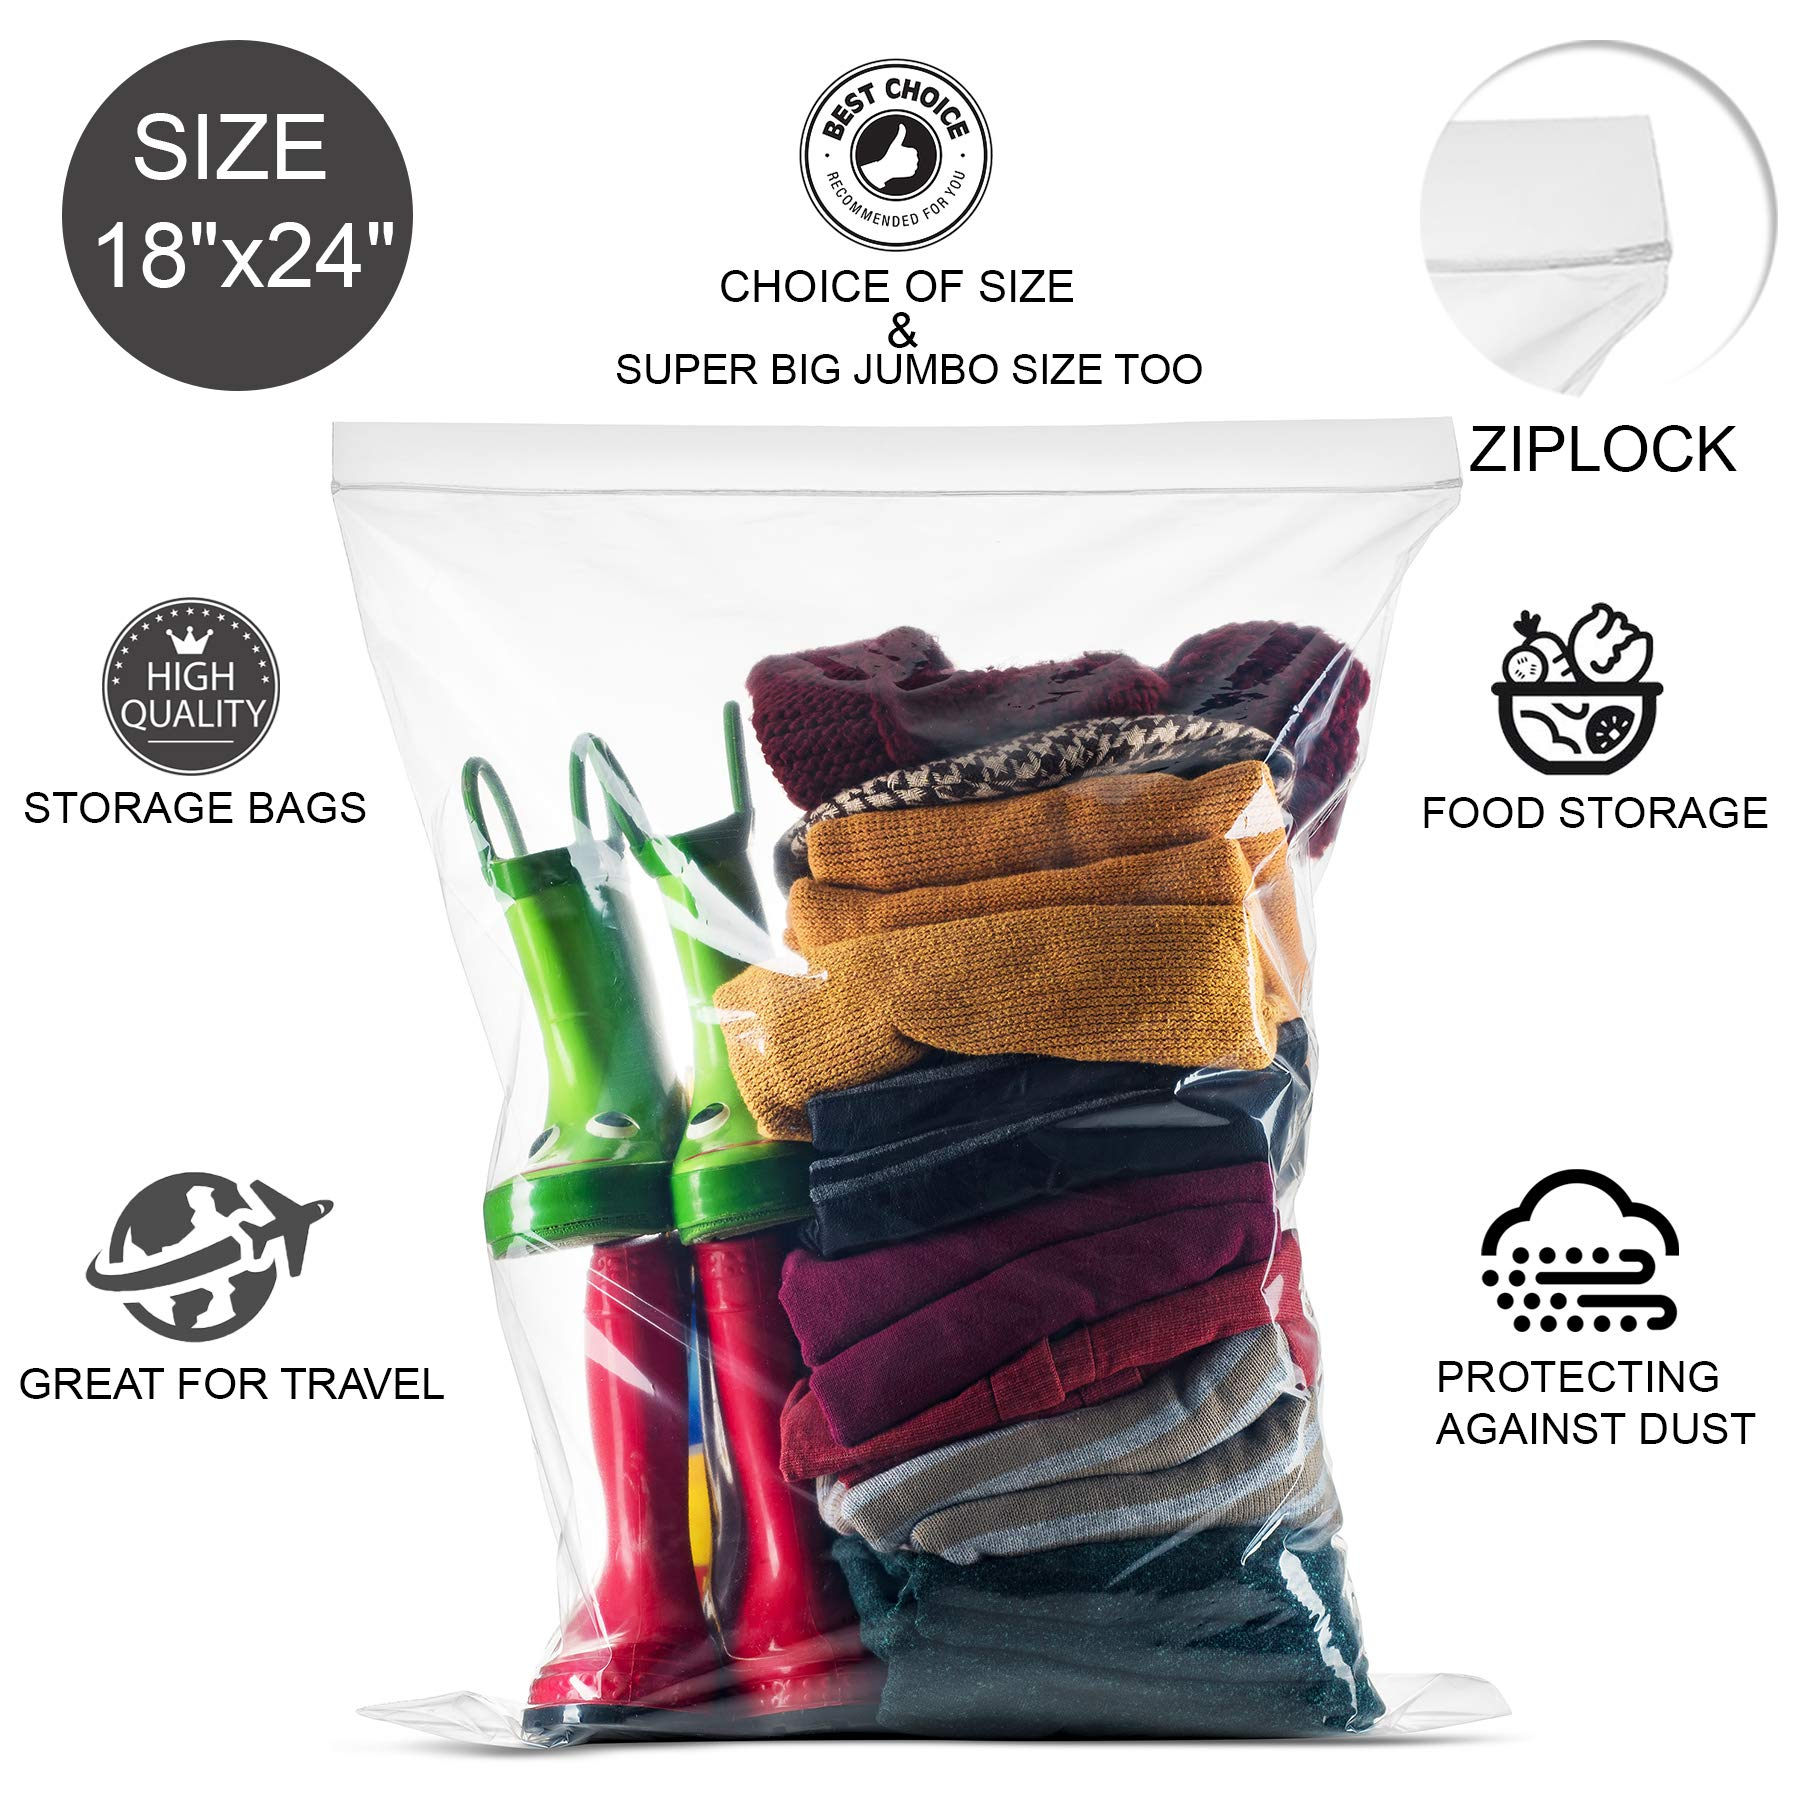 20 Count Extra Large Zip and Lock Bags, Strong Thick Clear Very Big Zip in Lock Storage Bags, Great for Food, Clothing, Toys, Supplies, Home & Office, Travel, Size 18'' x 24'', 2 Mill Thick